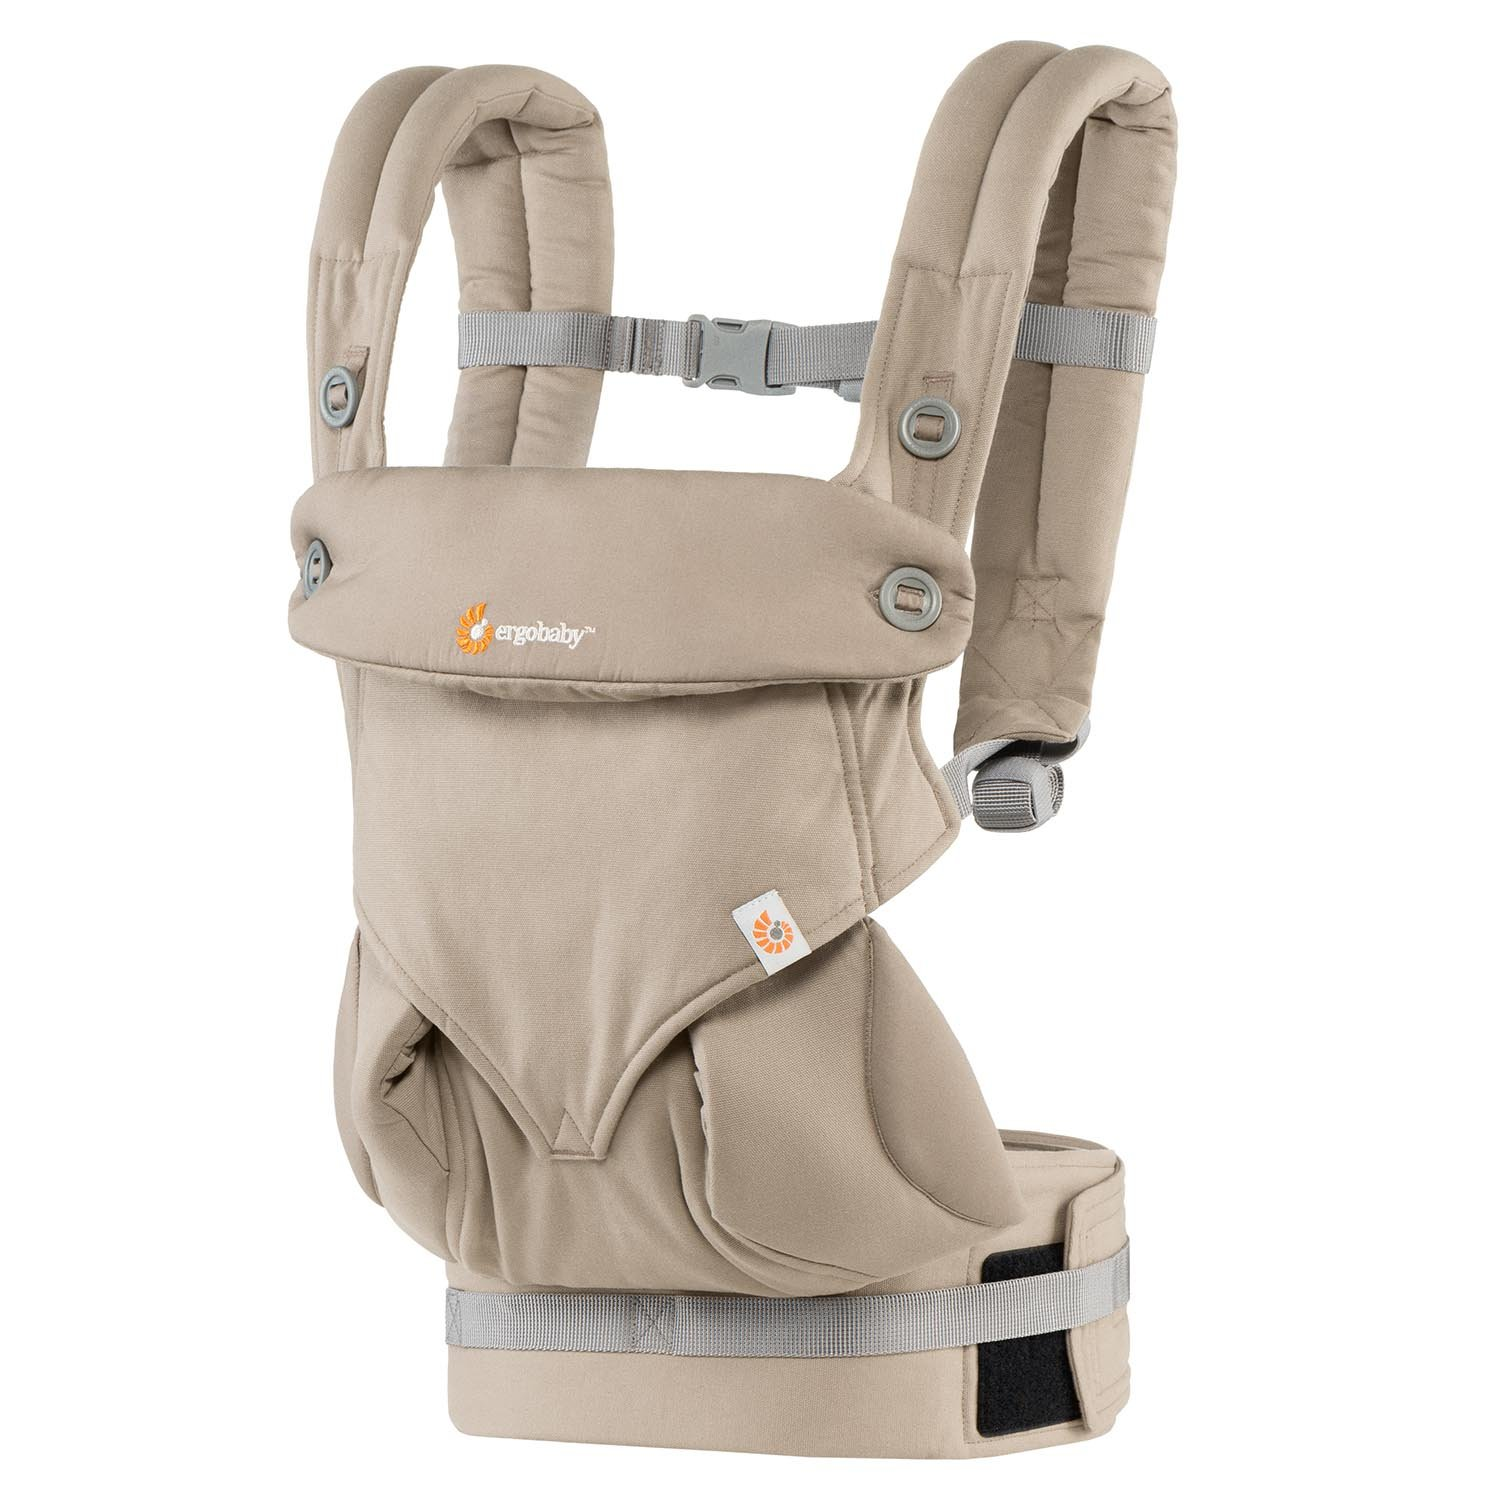 Ergobaby baby carrier collection 360 5 5 15 kg Moonstone Amazon Baby